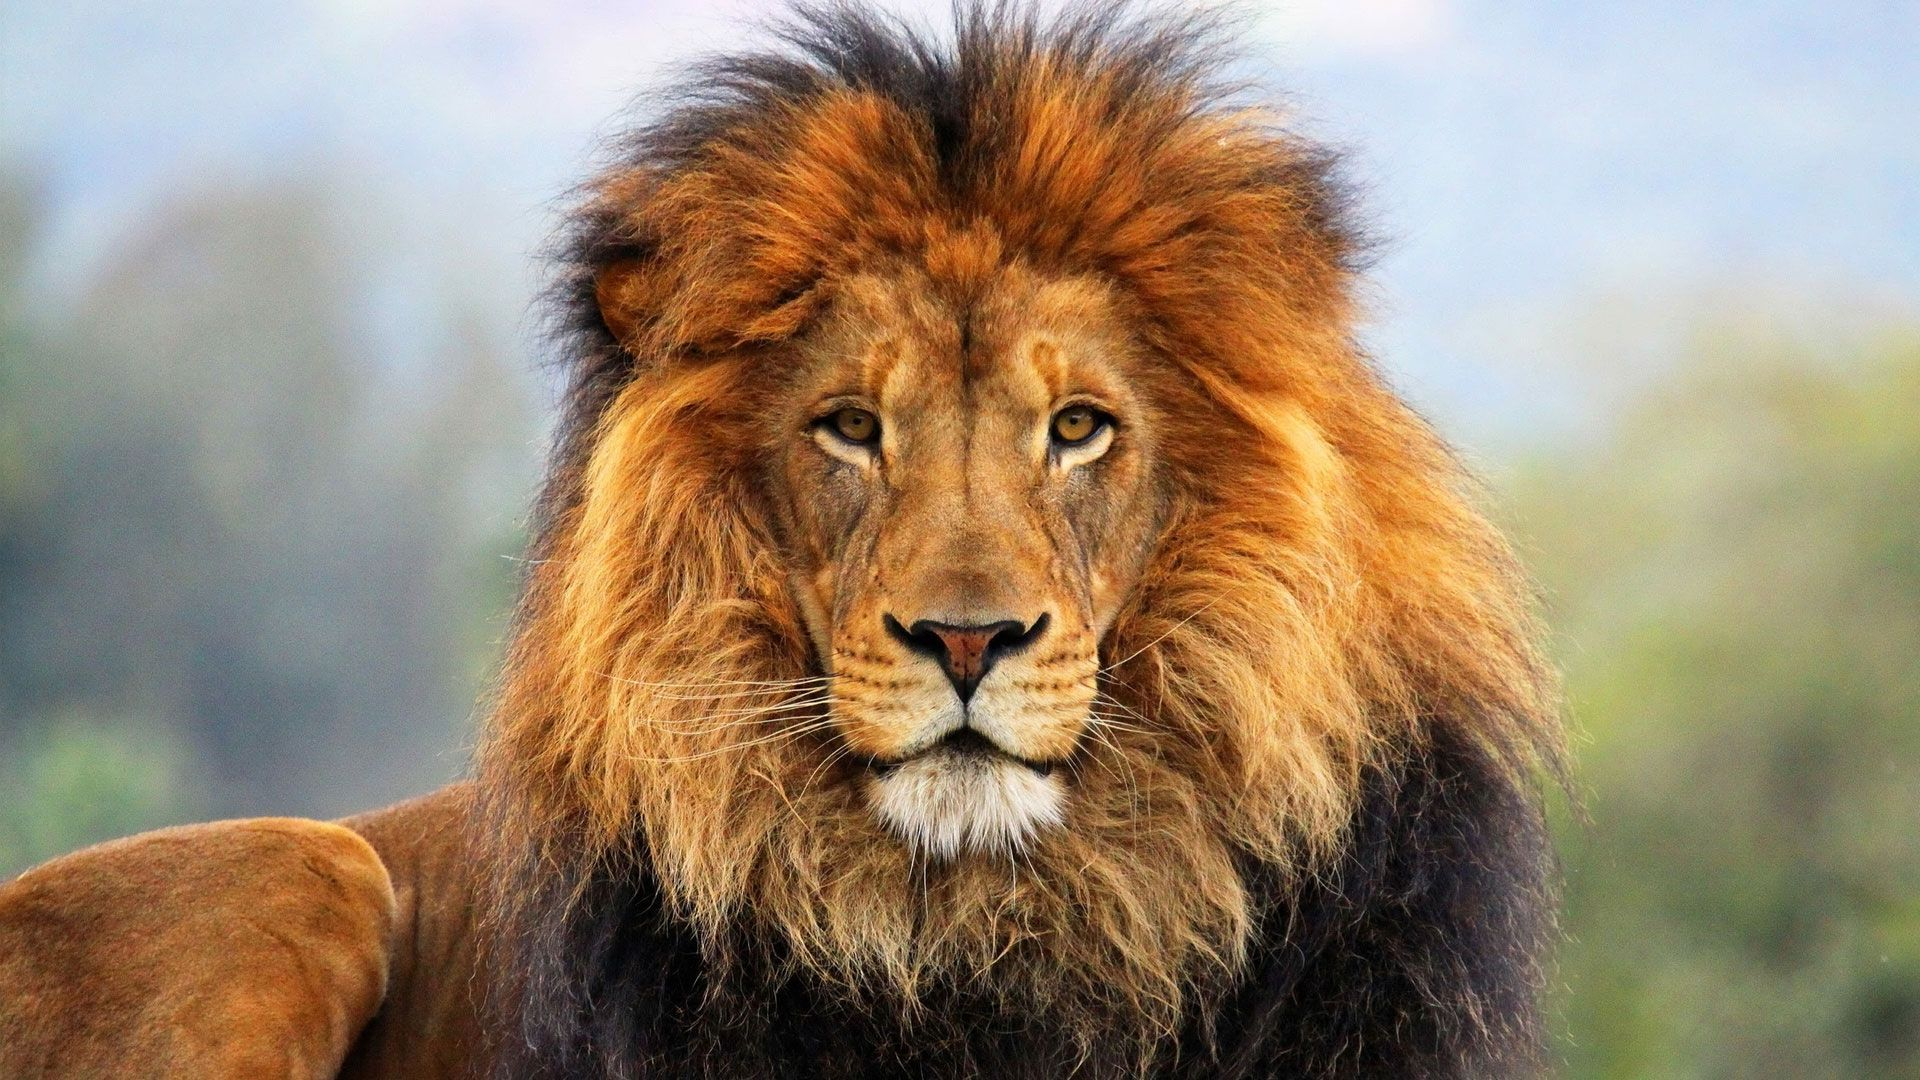 Howling Lion 4k Wallpapers Top Free Howling Lion 4k